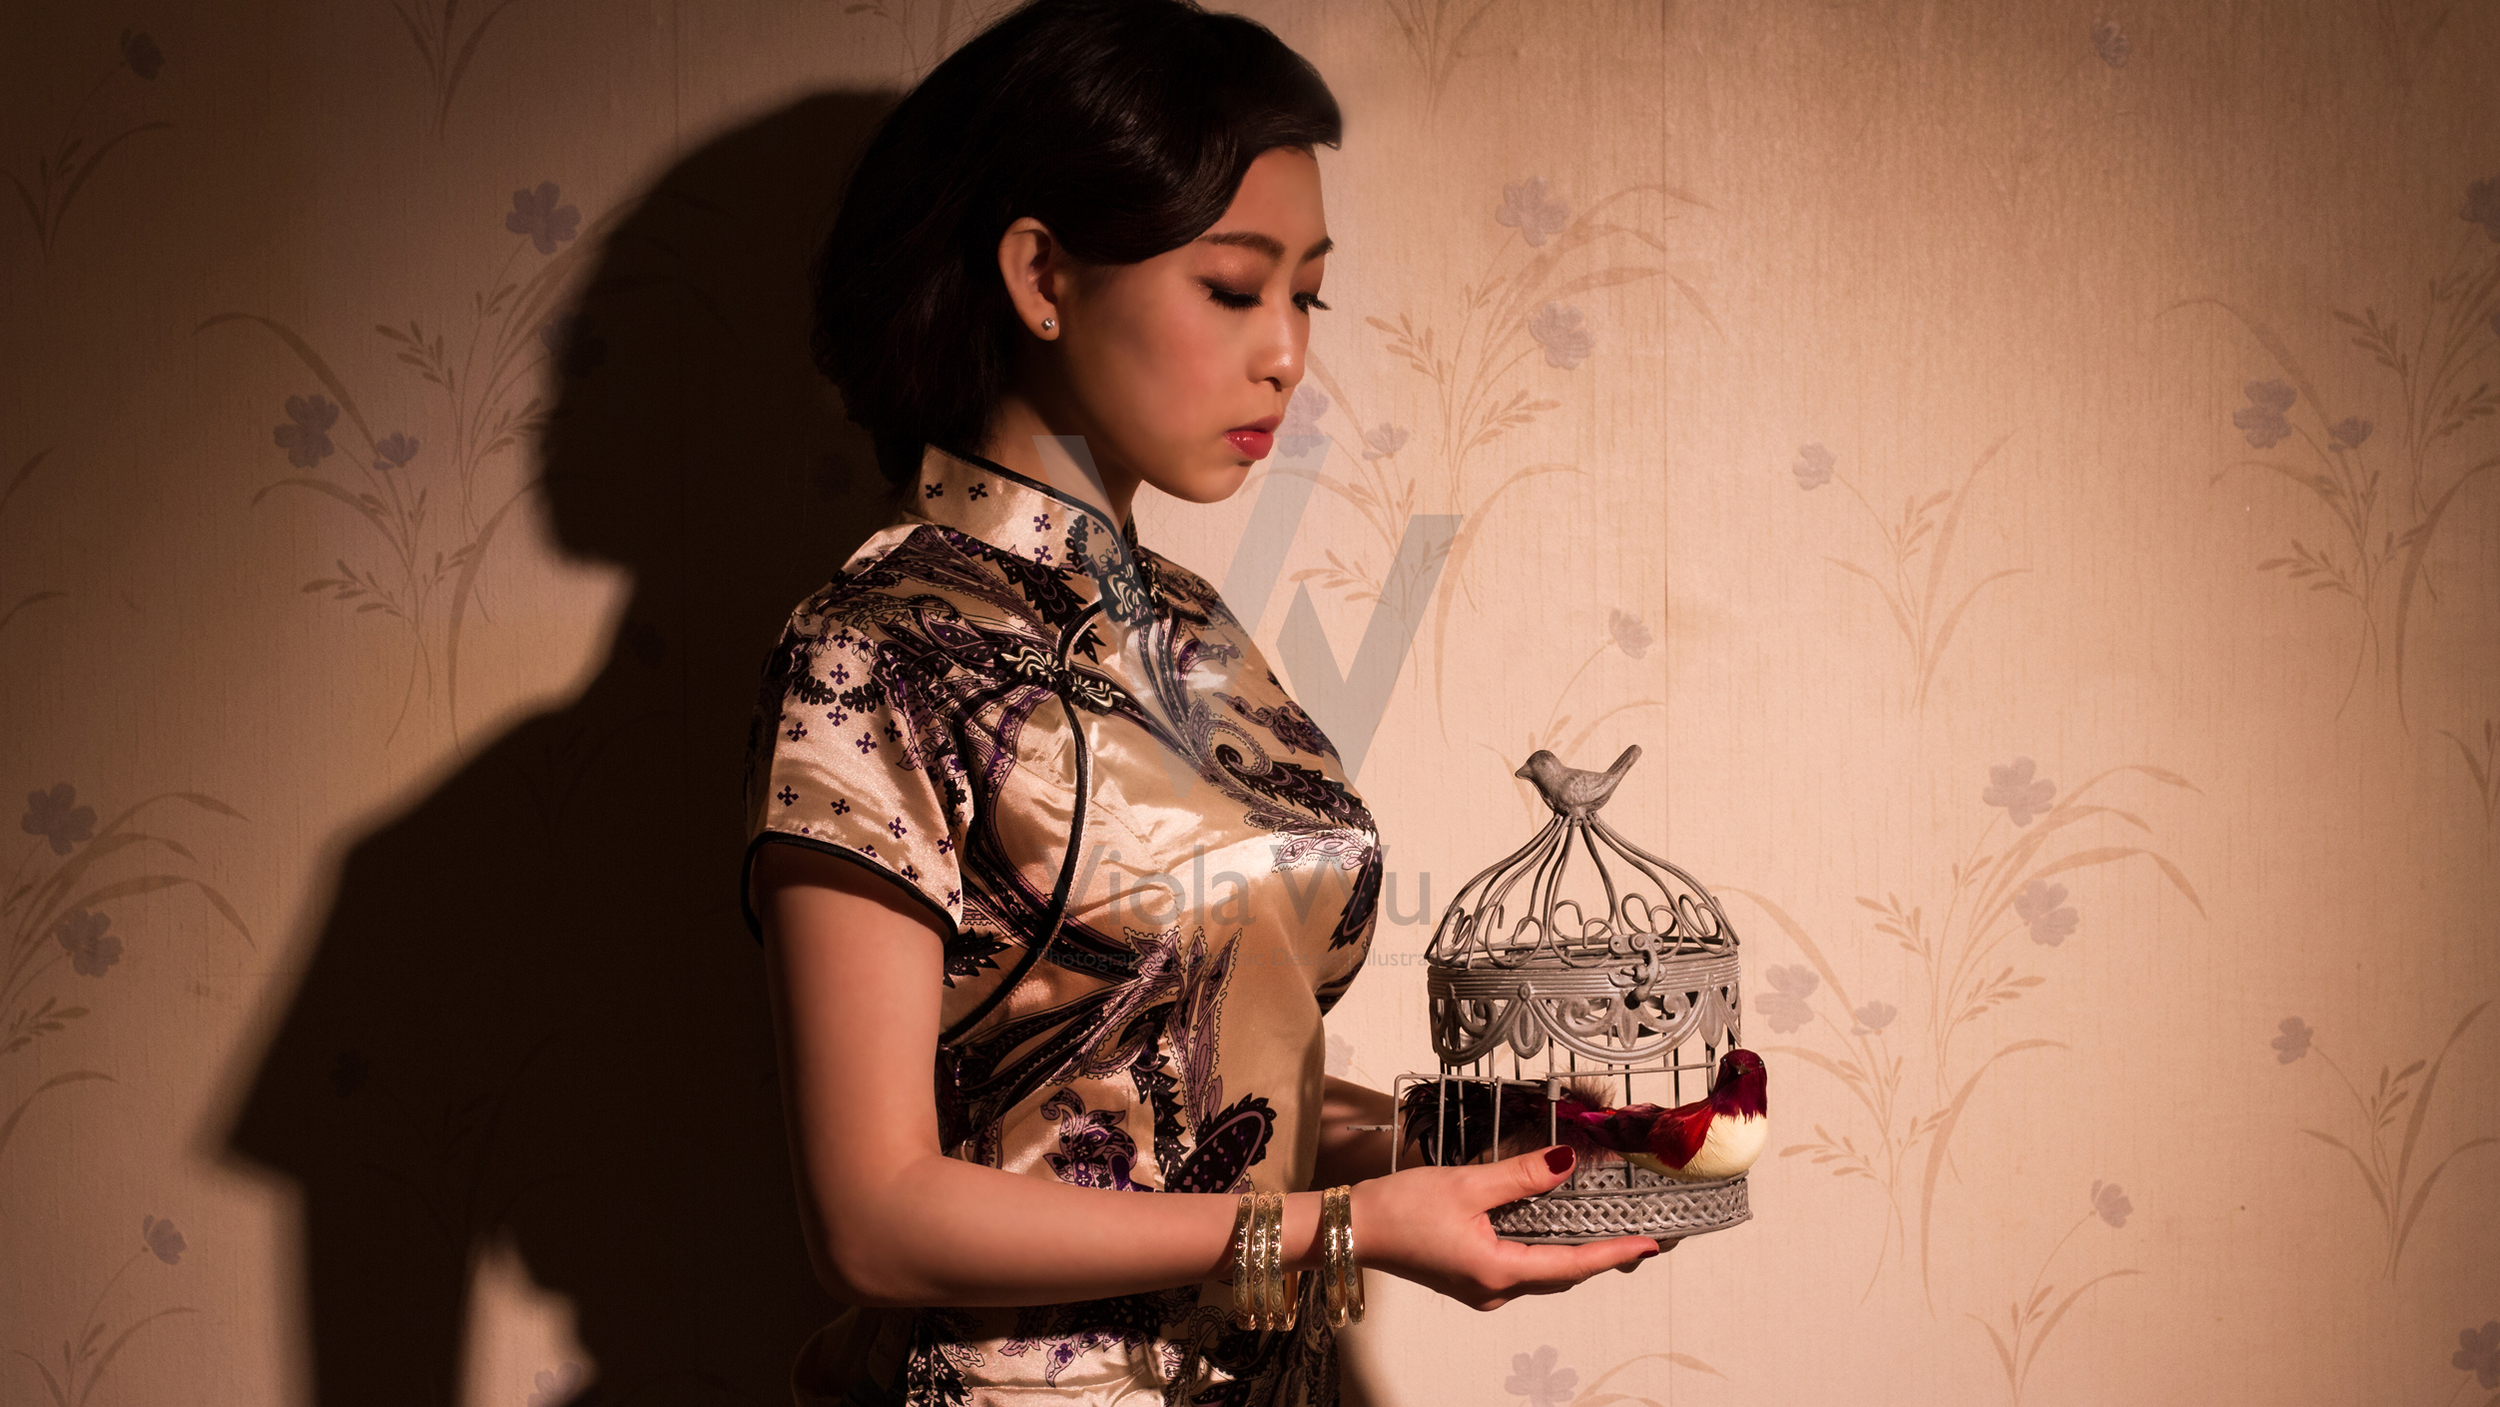 In the Mood for Love- Desire of Freedom